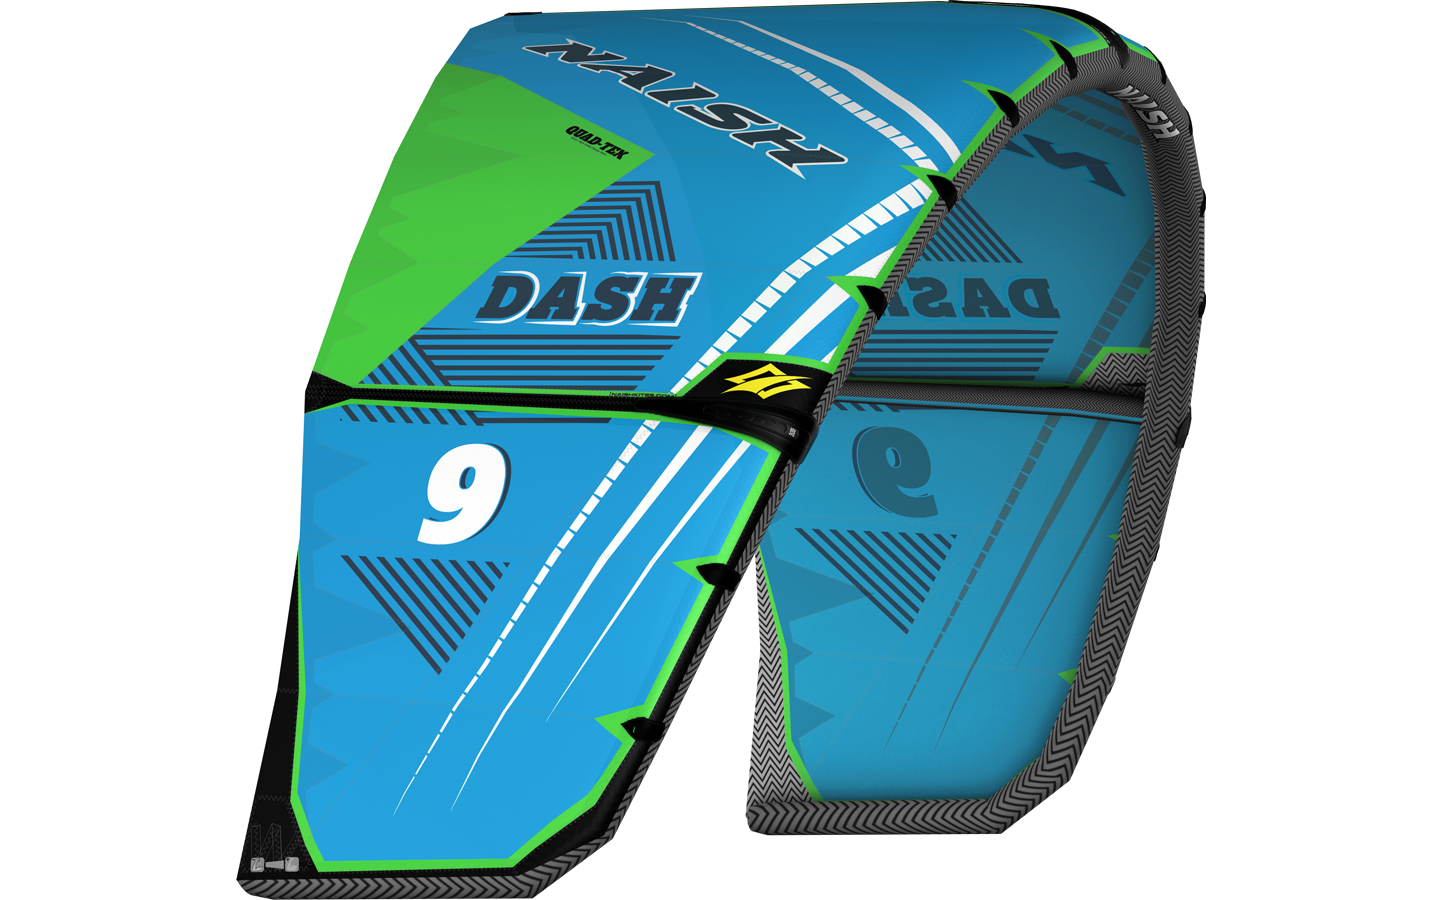 kite 2017/18 NAISH Dash 6m2